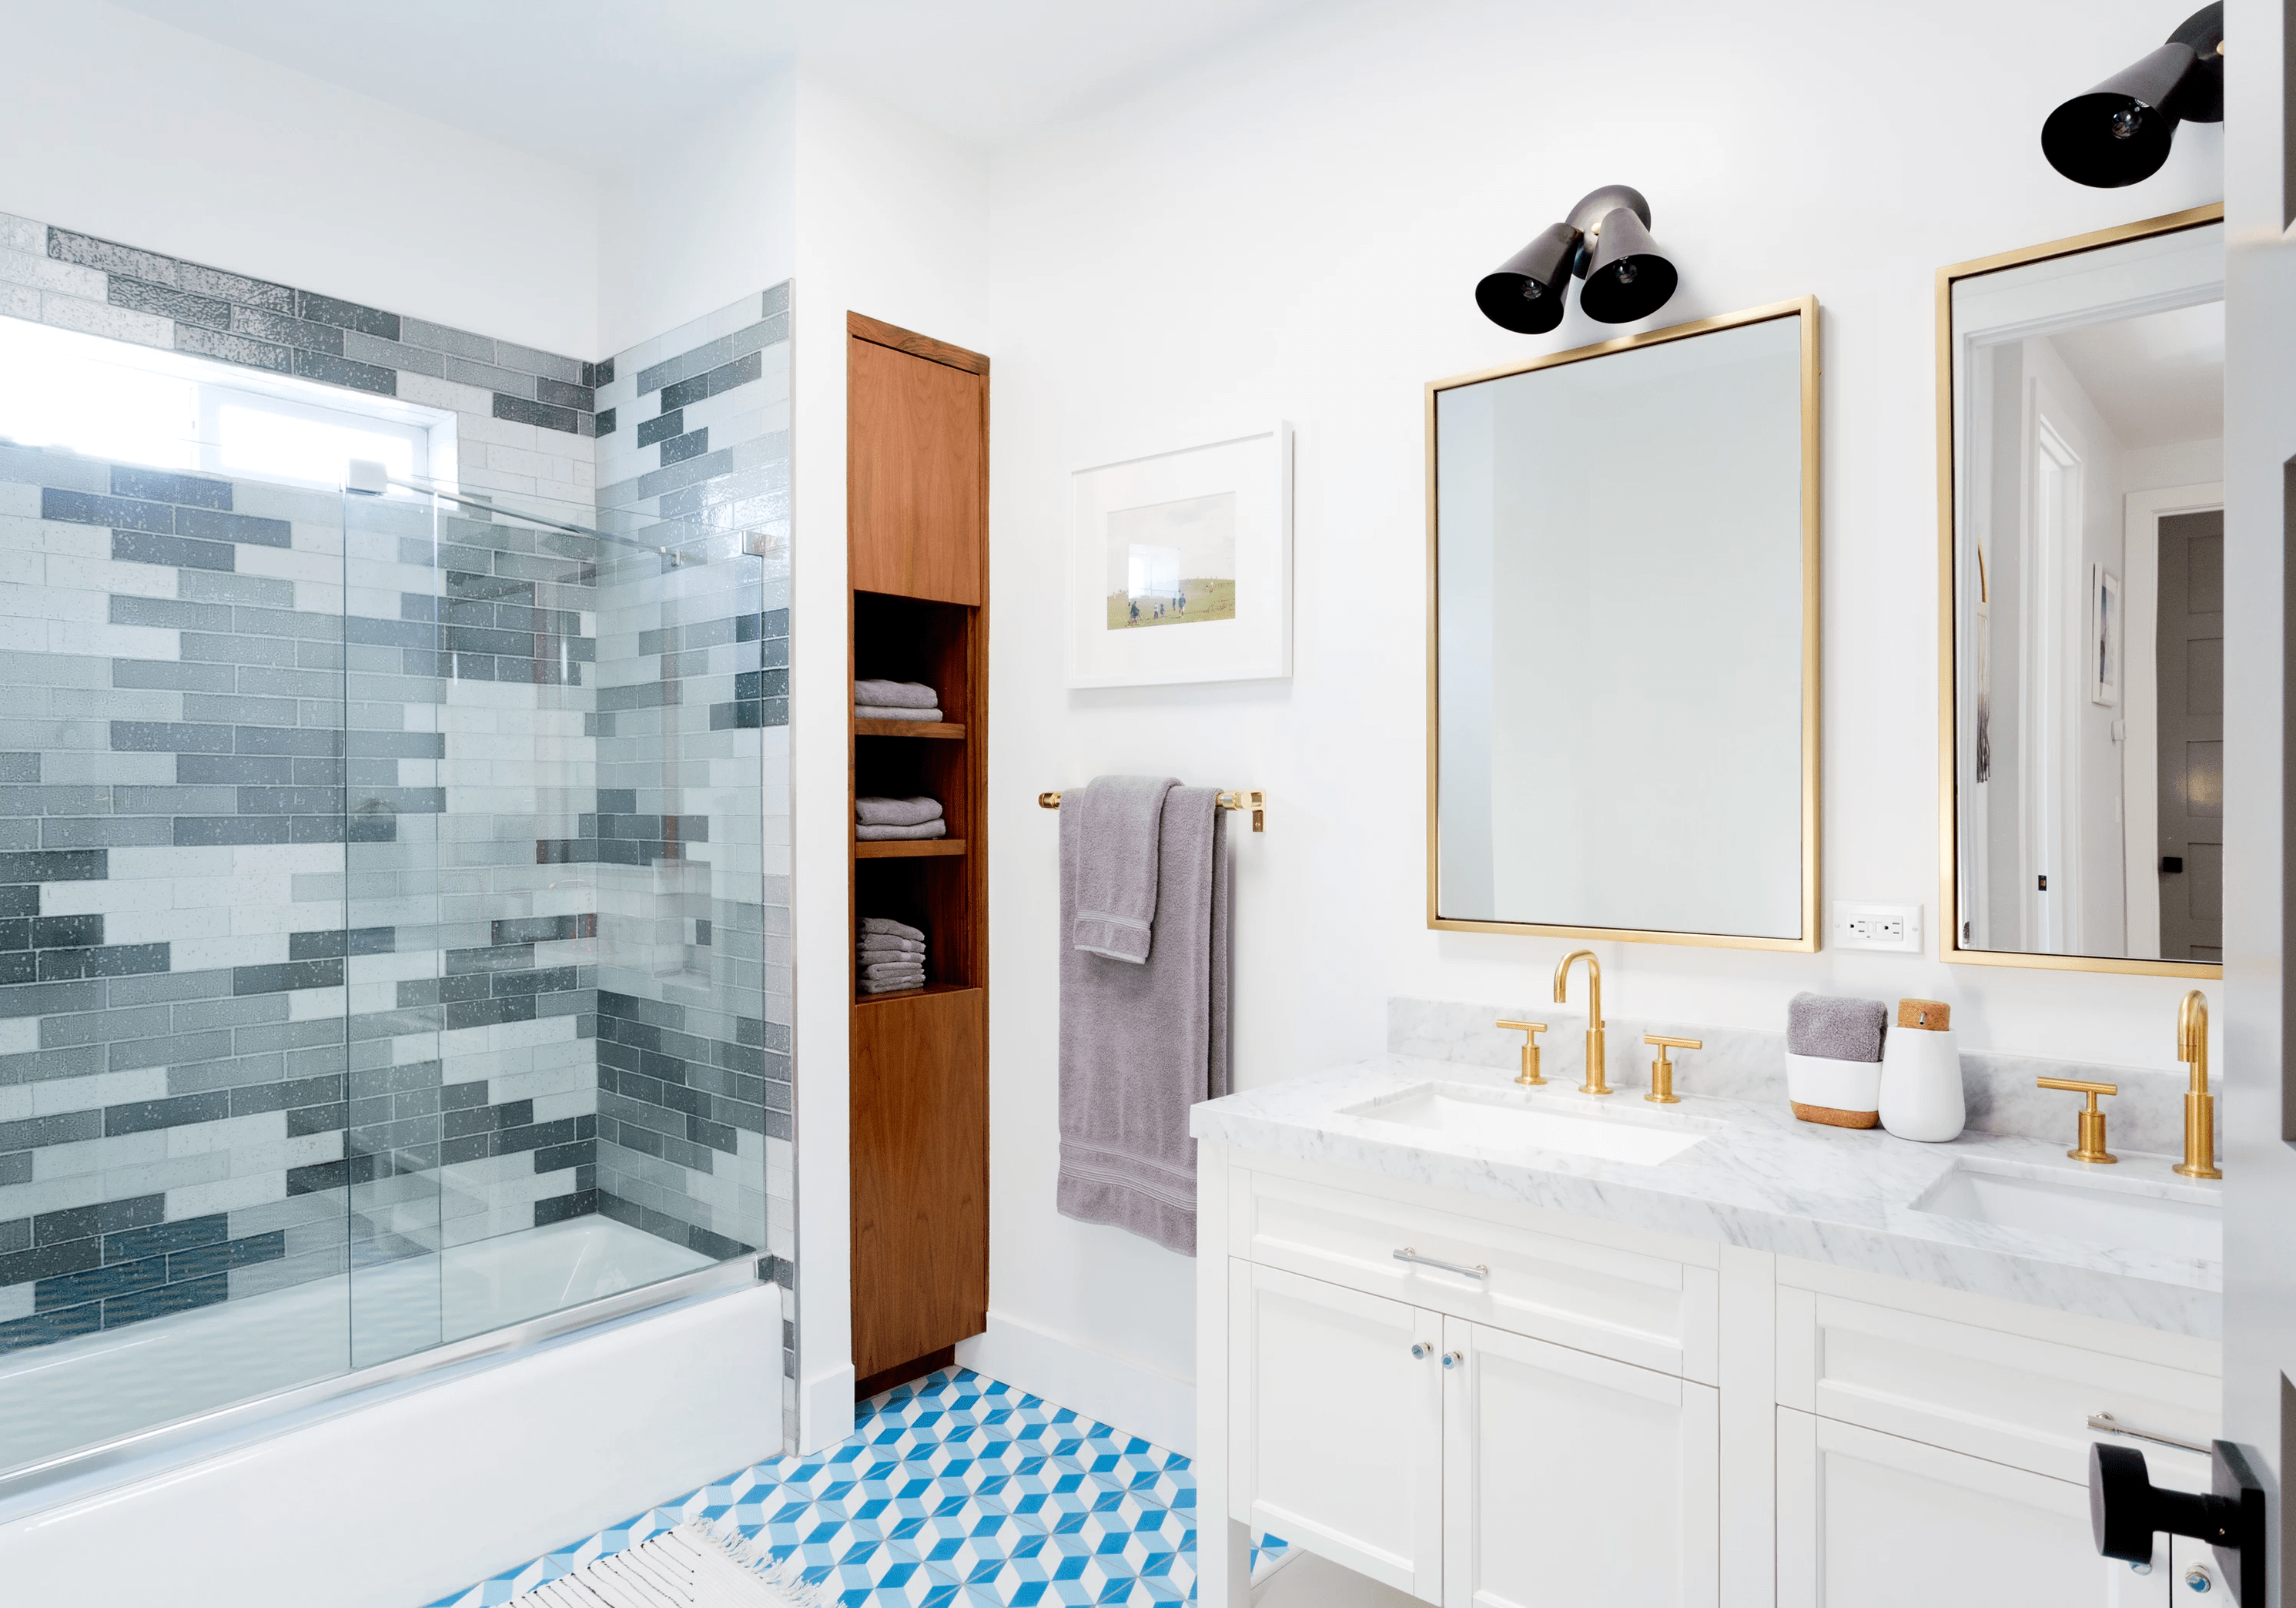 Subway Tile Bathroom 10 Best Subway Tile Bathroom Designs In 2018 Subway Tile Ideas